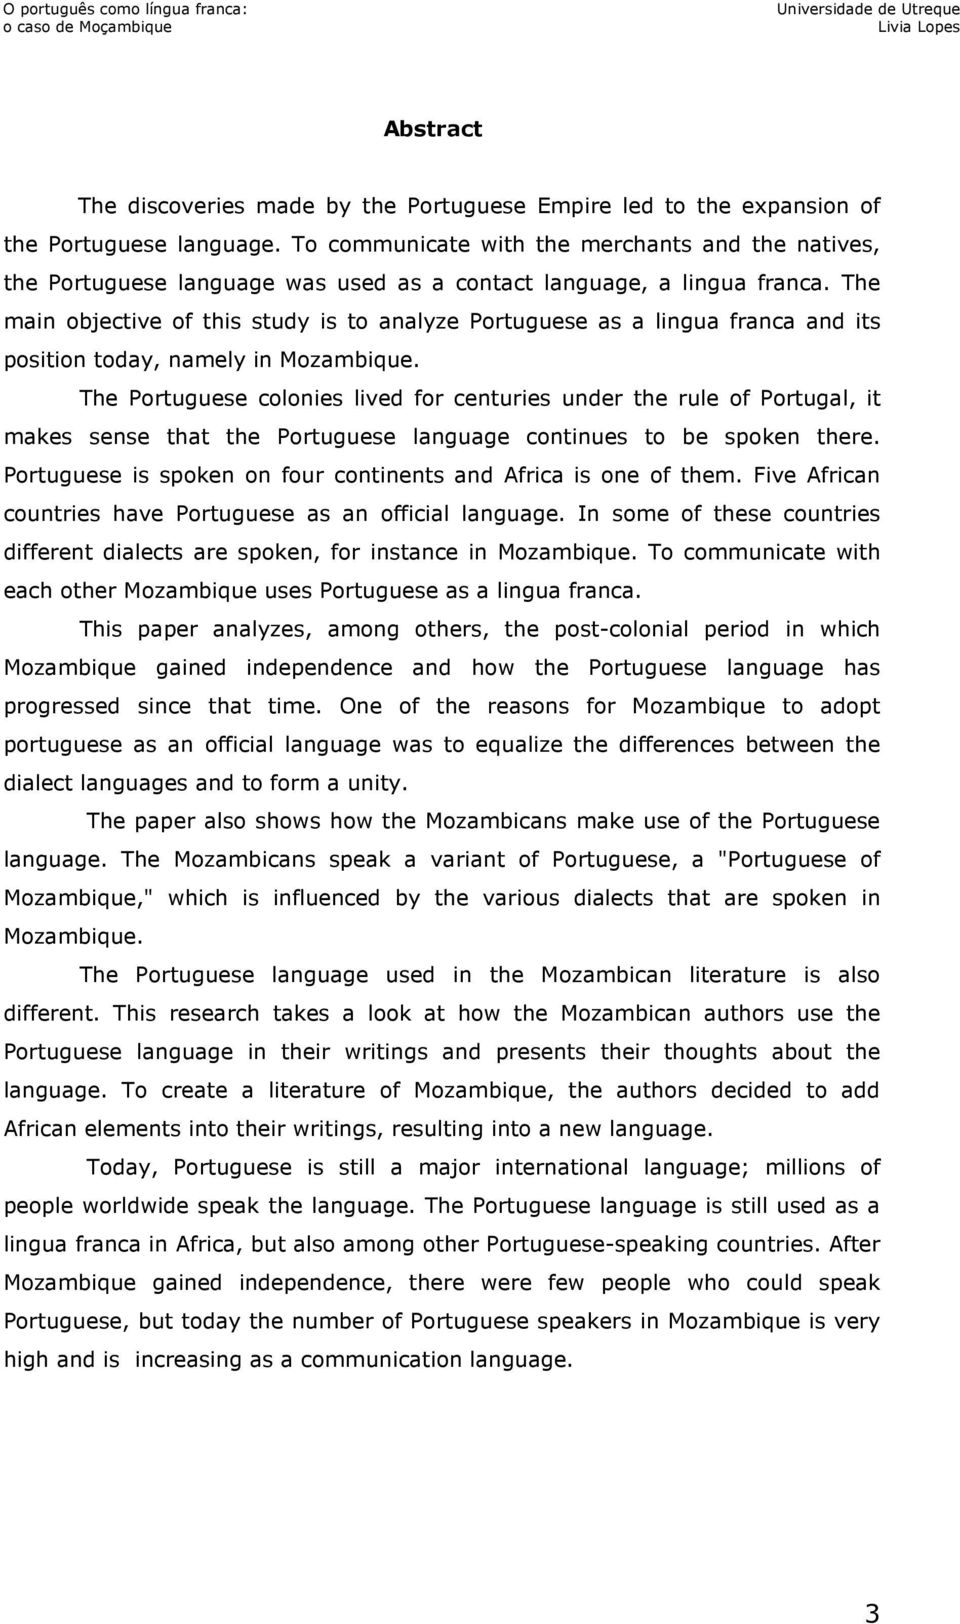 The main objective of this study is to analyze Portuguese as a lingua franca and its position today, namely in Mozambique.